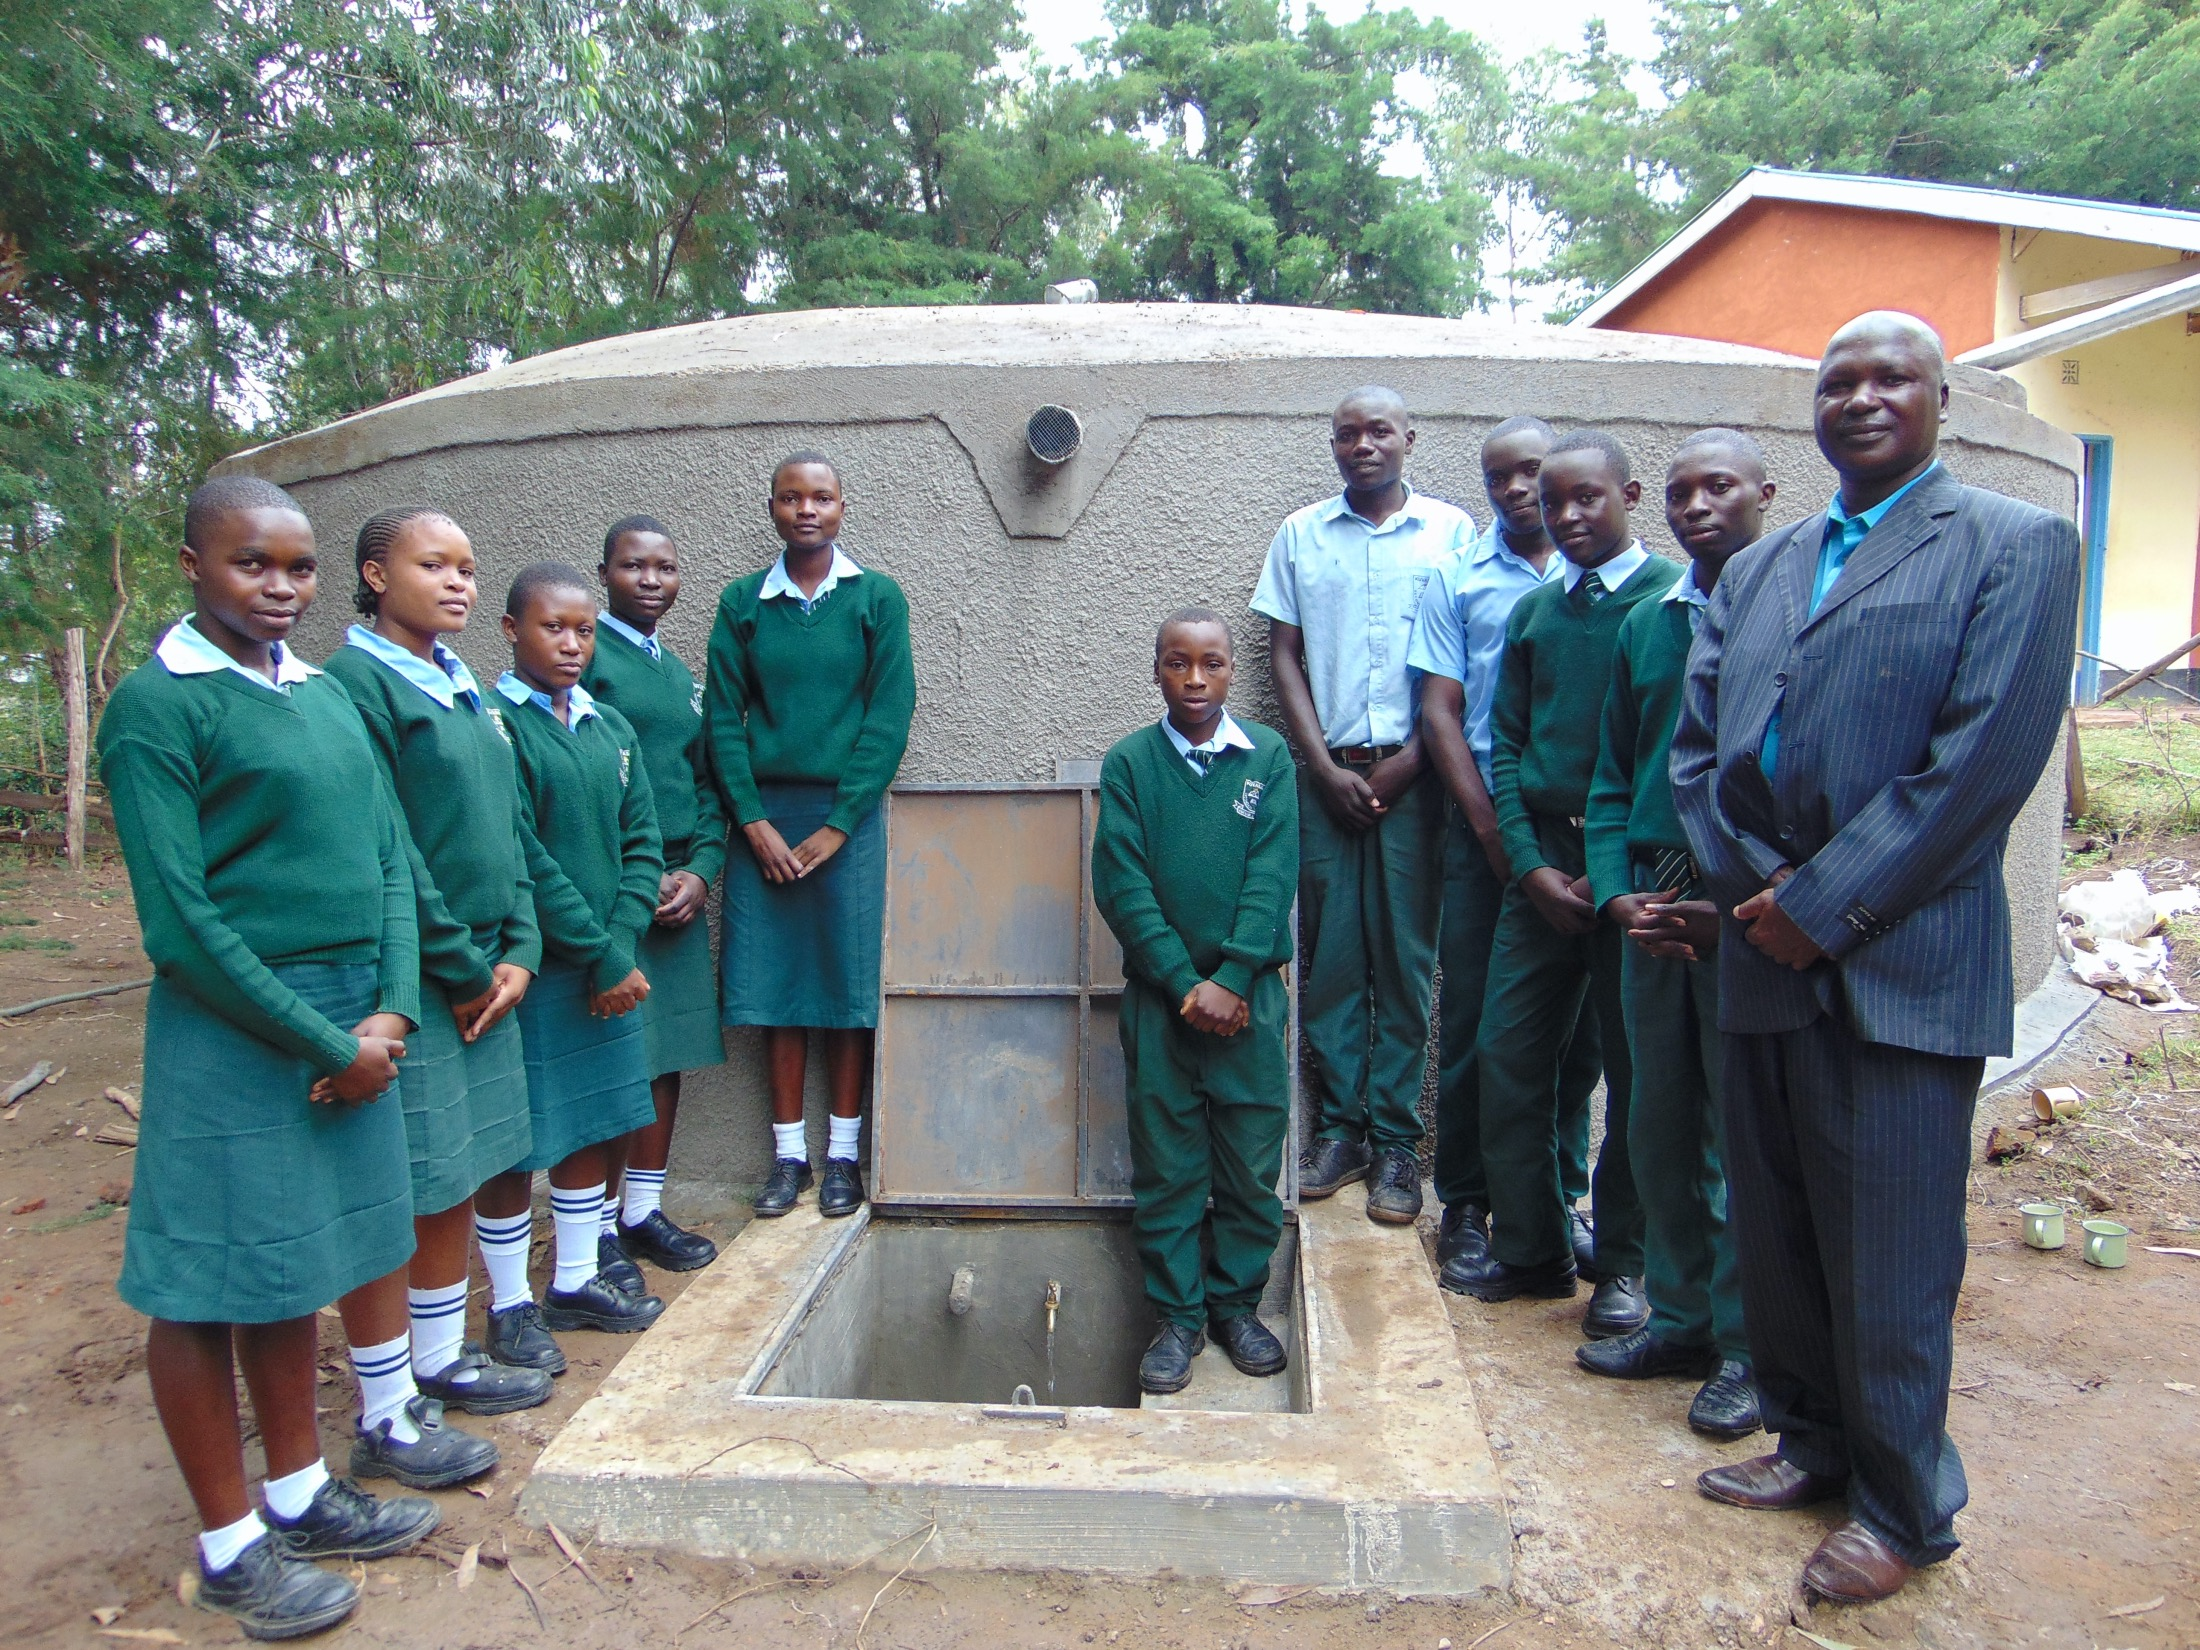 The Water Project : 47-kenya20112-students-and-principal-formally-pose-at-the-water-tank-2